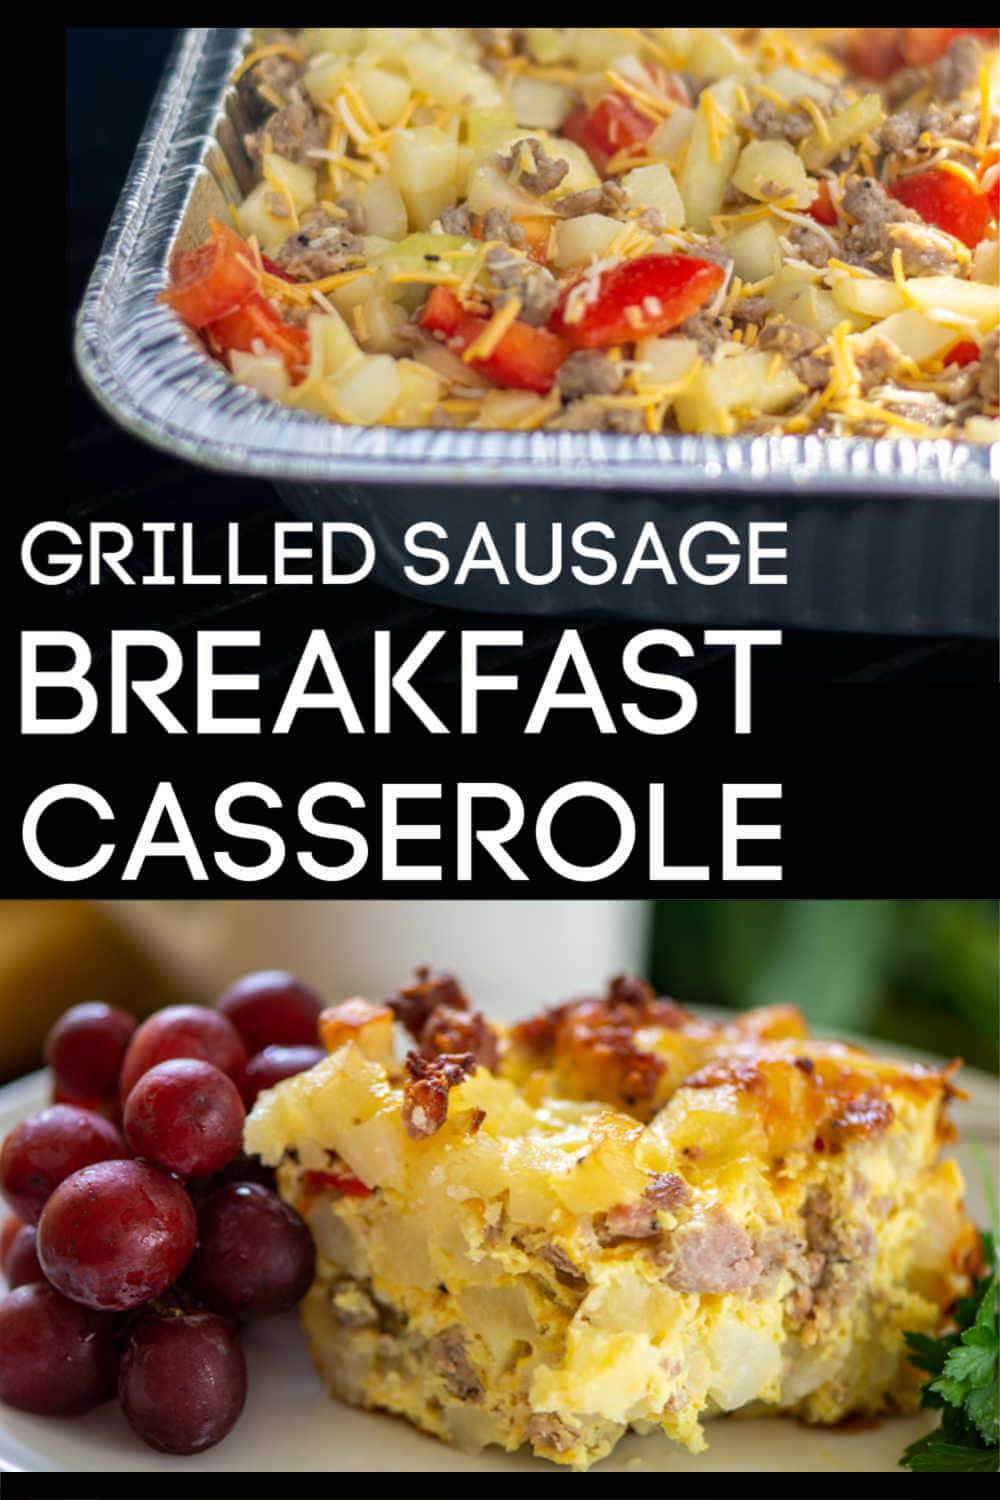 Try this Grilled Sausage Breakfast Casserole for a Fun Dump-and-Go Grilling recipe for a tasty morning meal! This couldn't be any easier! #Breakfast #Grilled #BreakfastBake #casserole